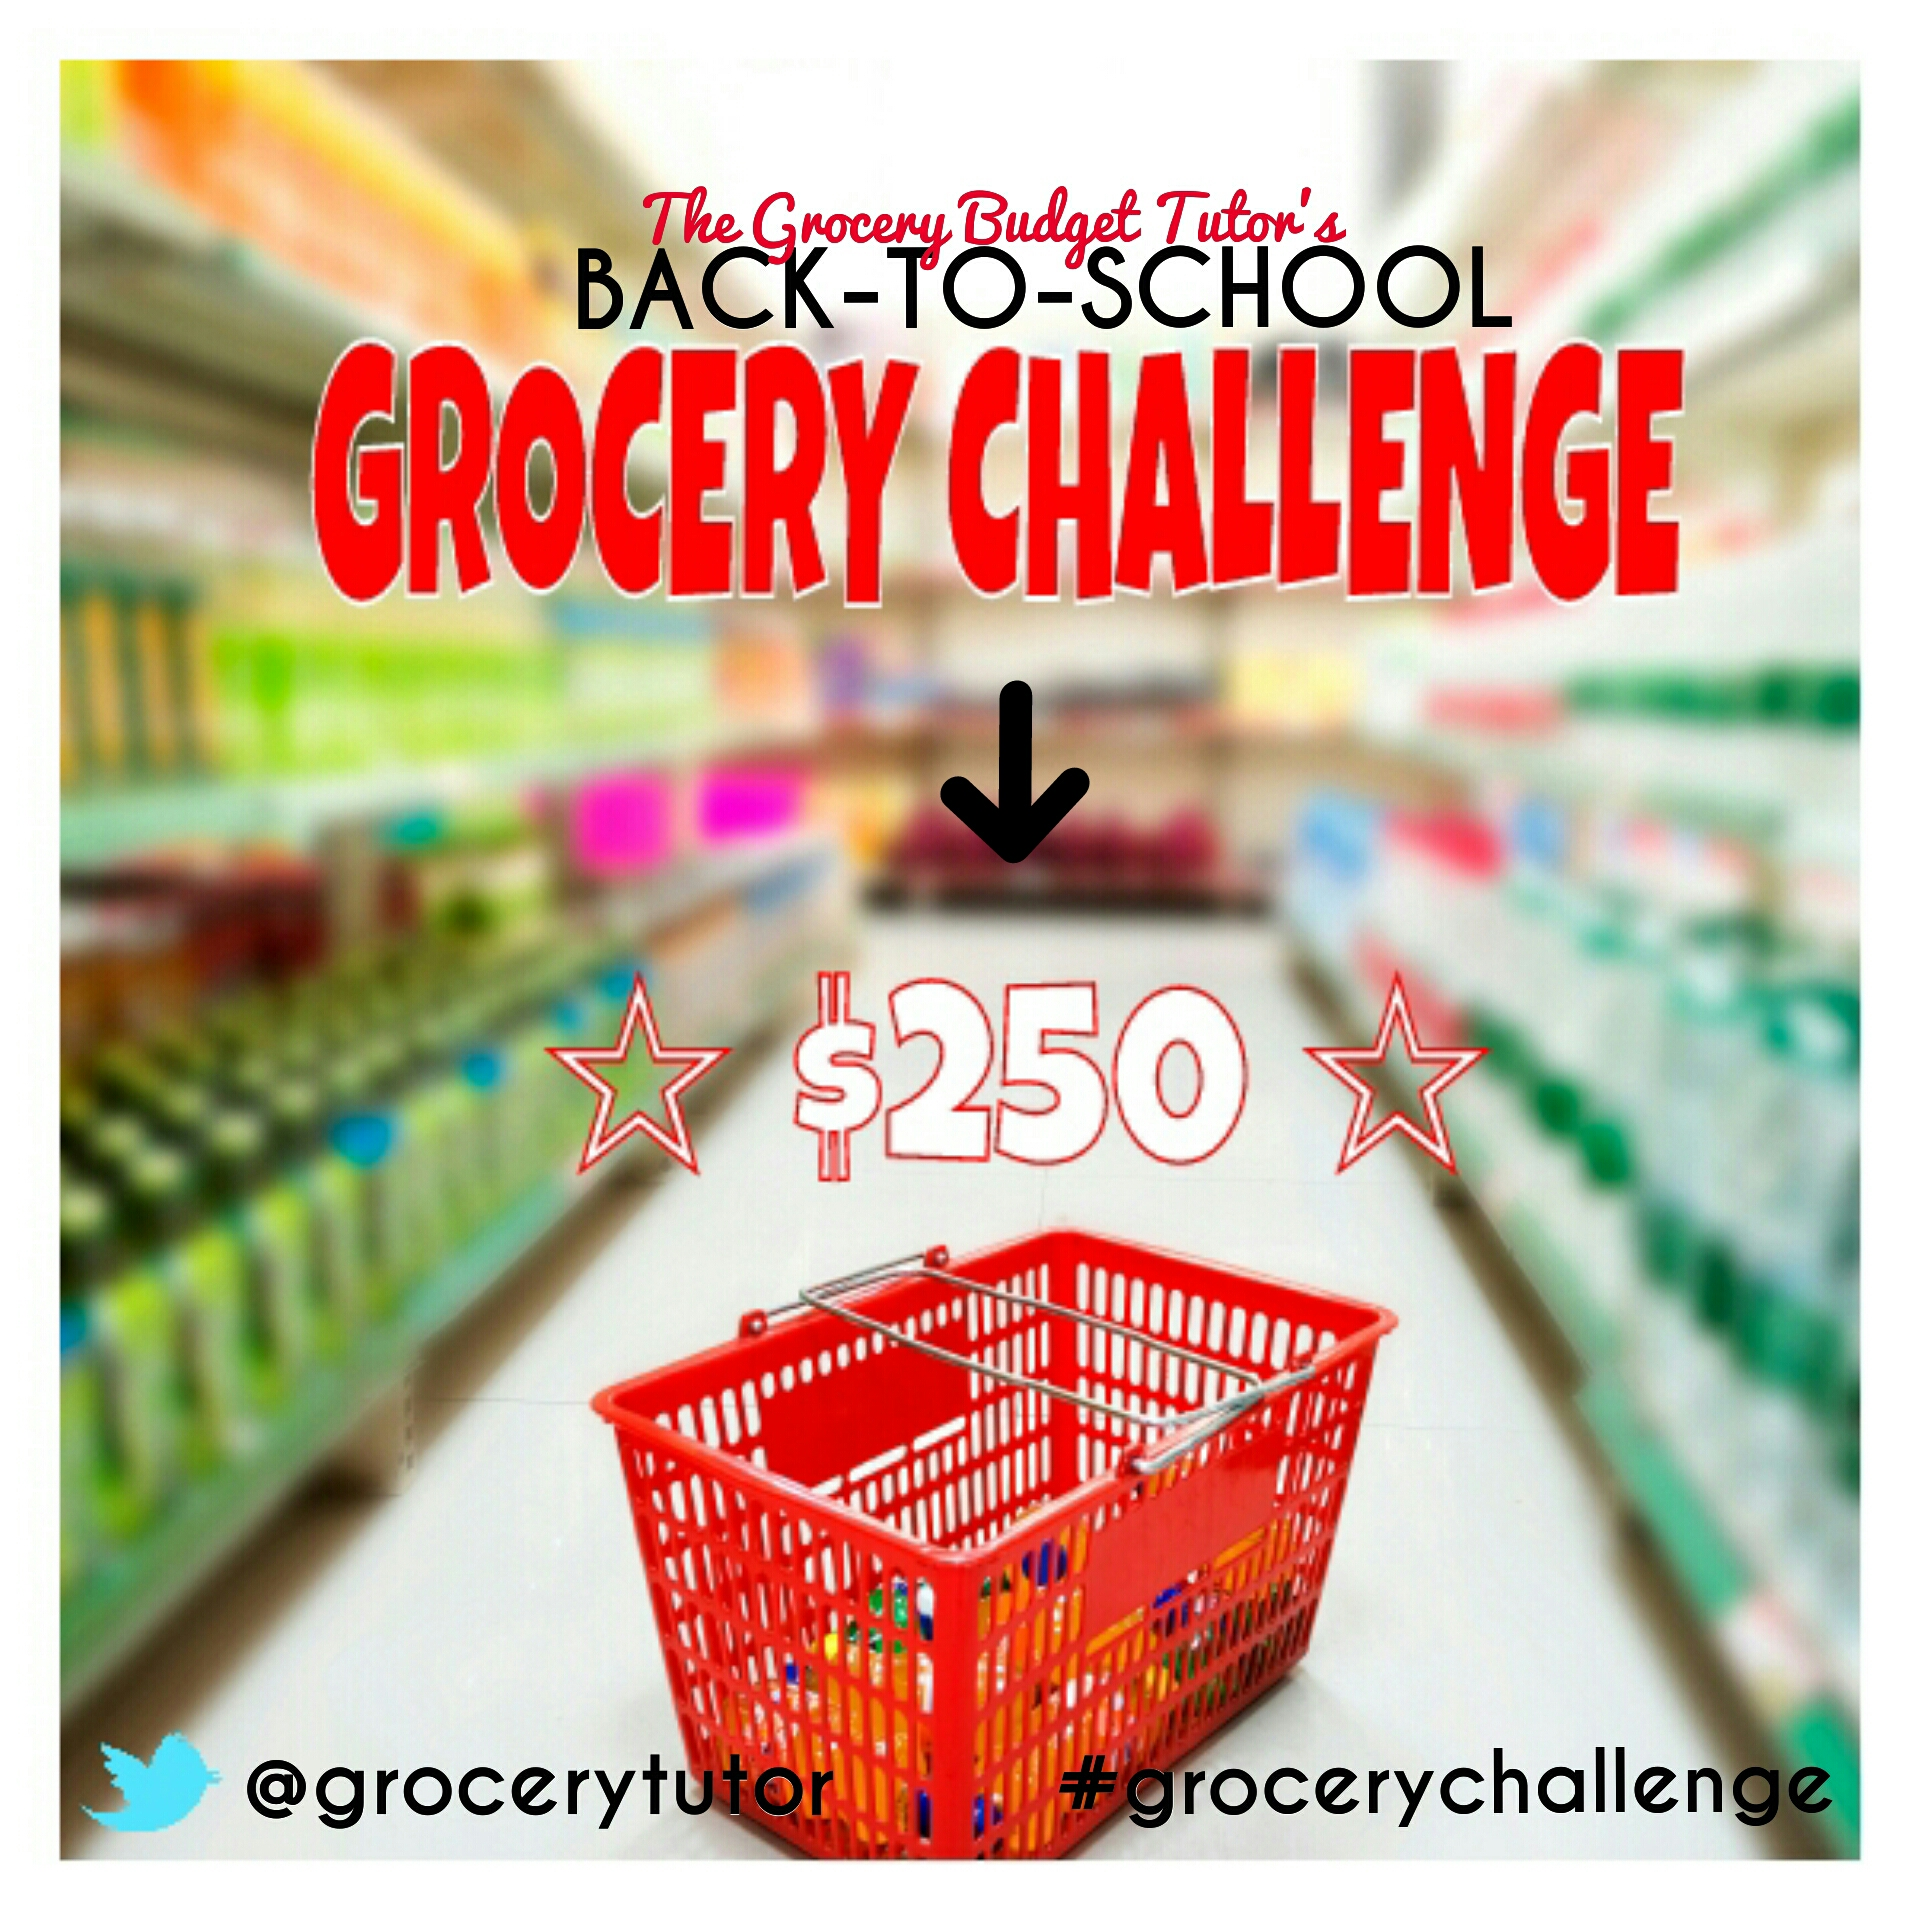 grocery challenge with the Grocery Budget Tutor Amiyrah Martin